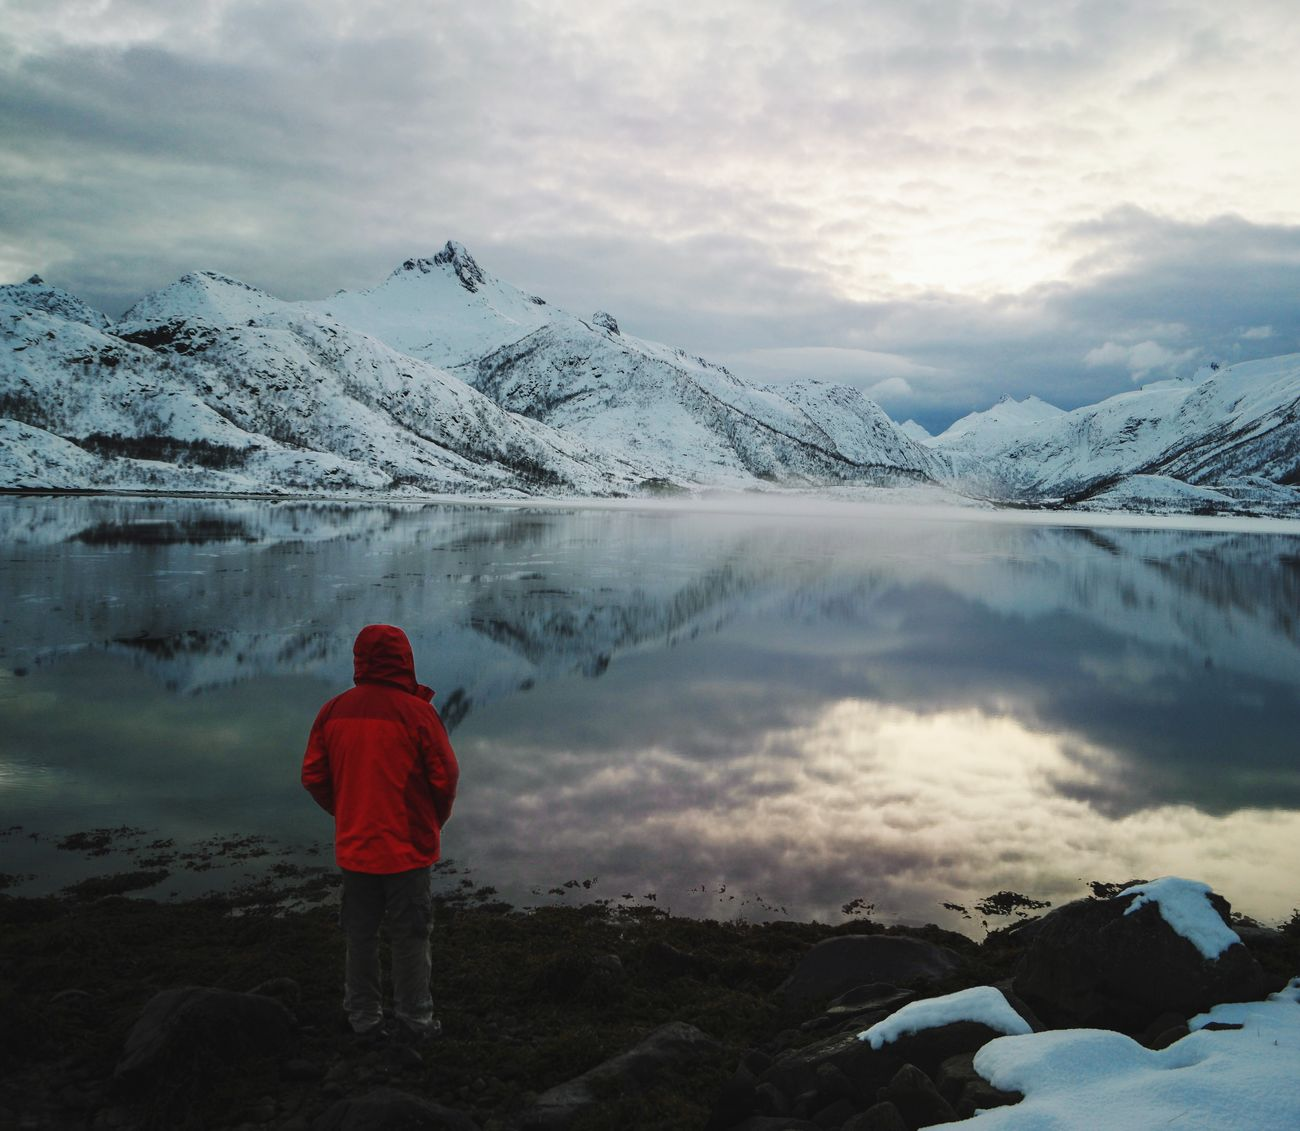 Its gonna be white monster all over Envision The Future The Great Outdoors - 2016 EyeEm Awards The Great Outdoors With Adobe Travel Landscape Mothernature Sea And Sky Mountains Lake Snow EyeEm X Adobe - The Great Outdoors